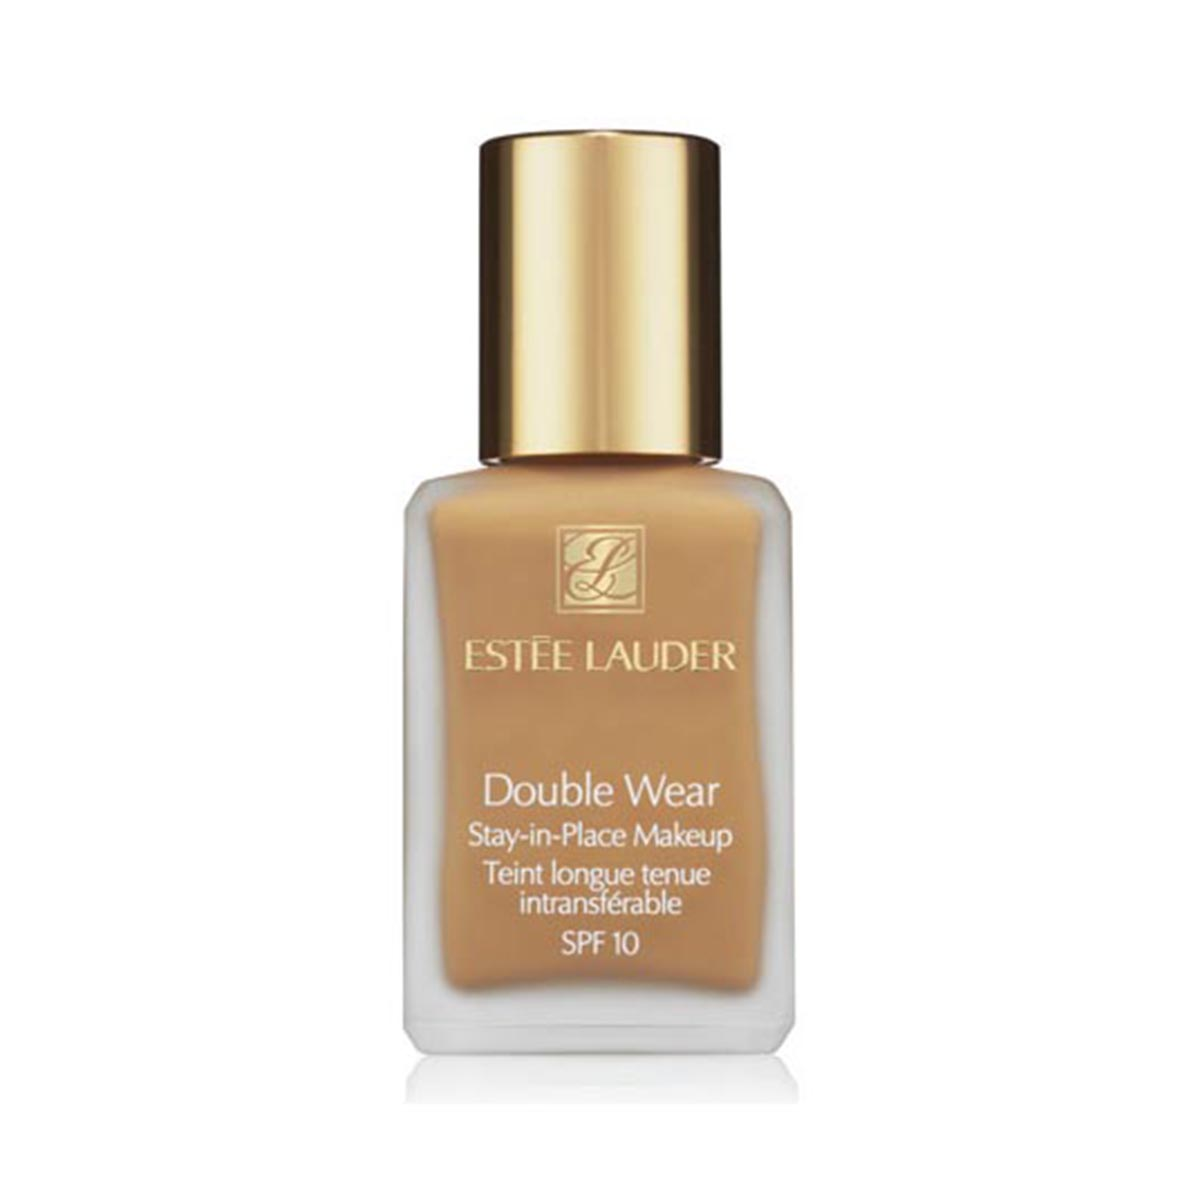 Estee lauder maquillaje double wear stay in place makeup spf10 3w1 tawny